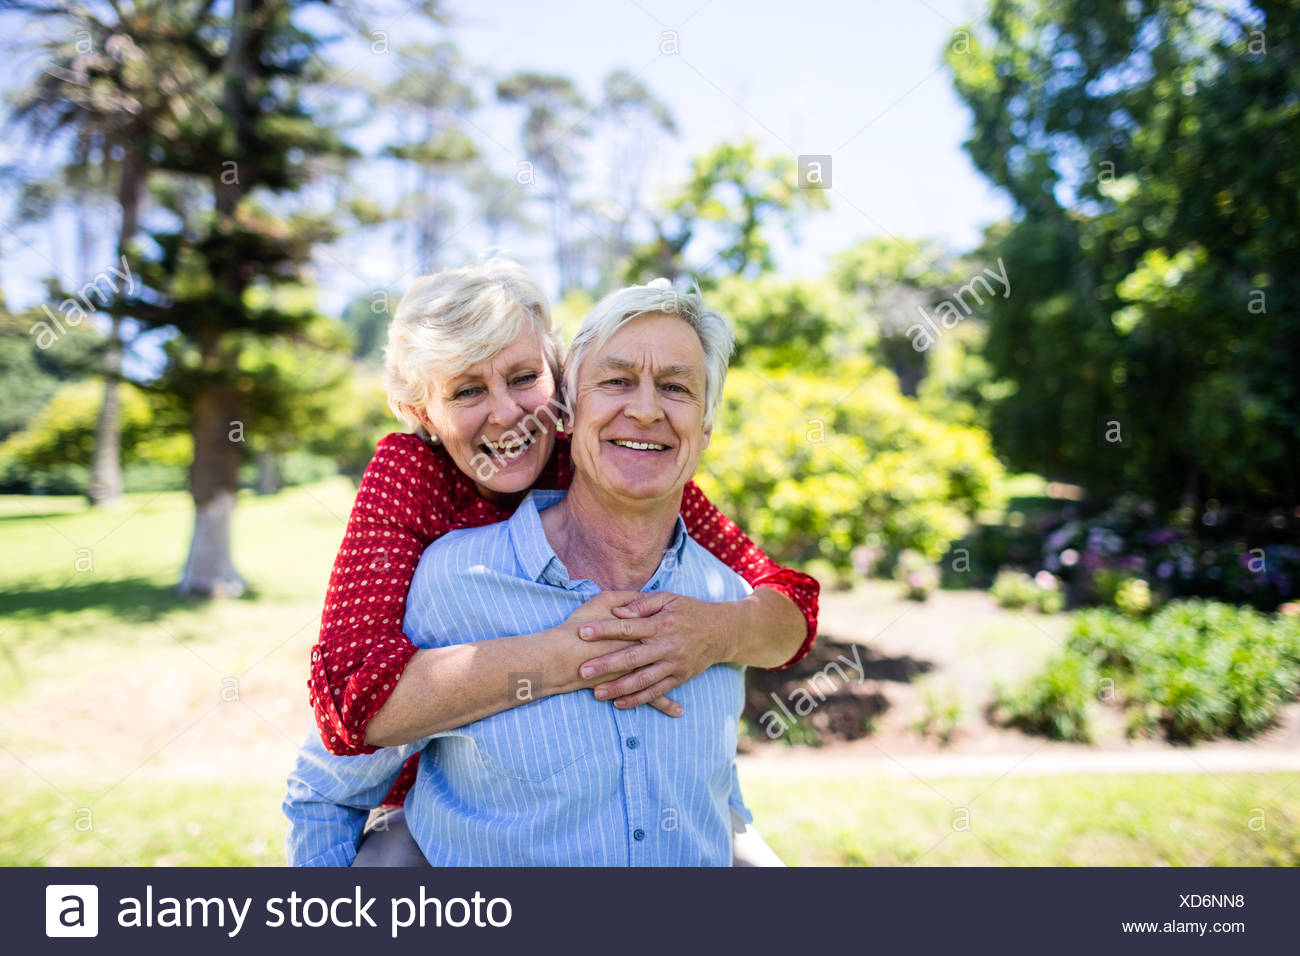 Happy senior man giving a piggy back to senior woman - Stock Image